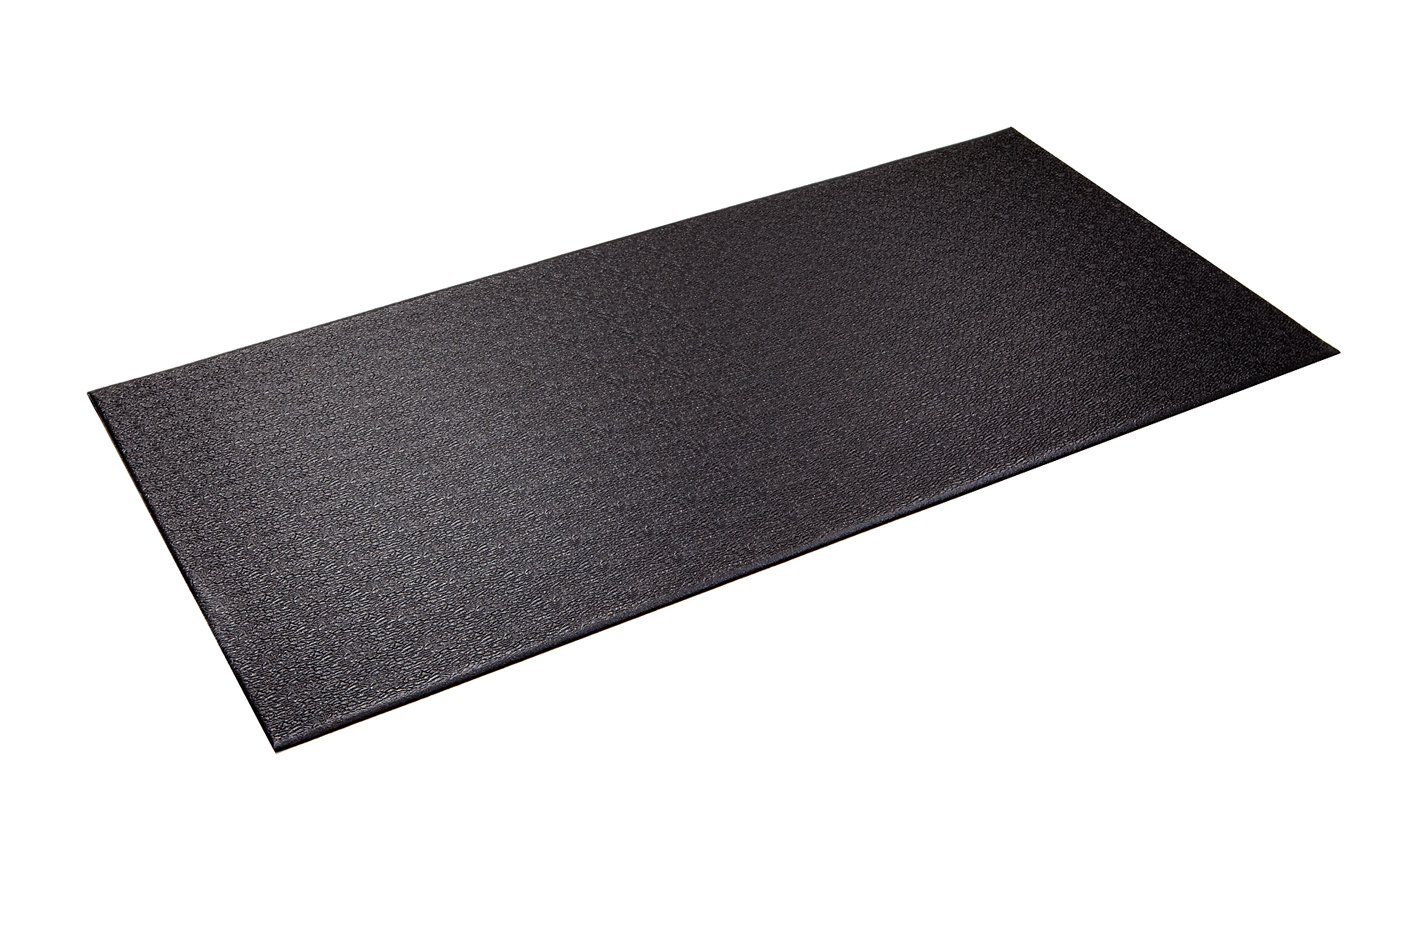 Supermats Heavy Duty Equipment Mat 13GS Made in U.S.A. for Indoor Cycles Recumbent Bikes Upright Exercise Bikes and Steppers  (2.5 Feet x 5 Feet) (30-Inch x 60-Inch)  (76.2 cm x 152.4 cm) by SuperMats (Image #2)